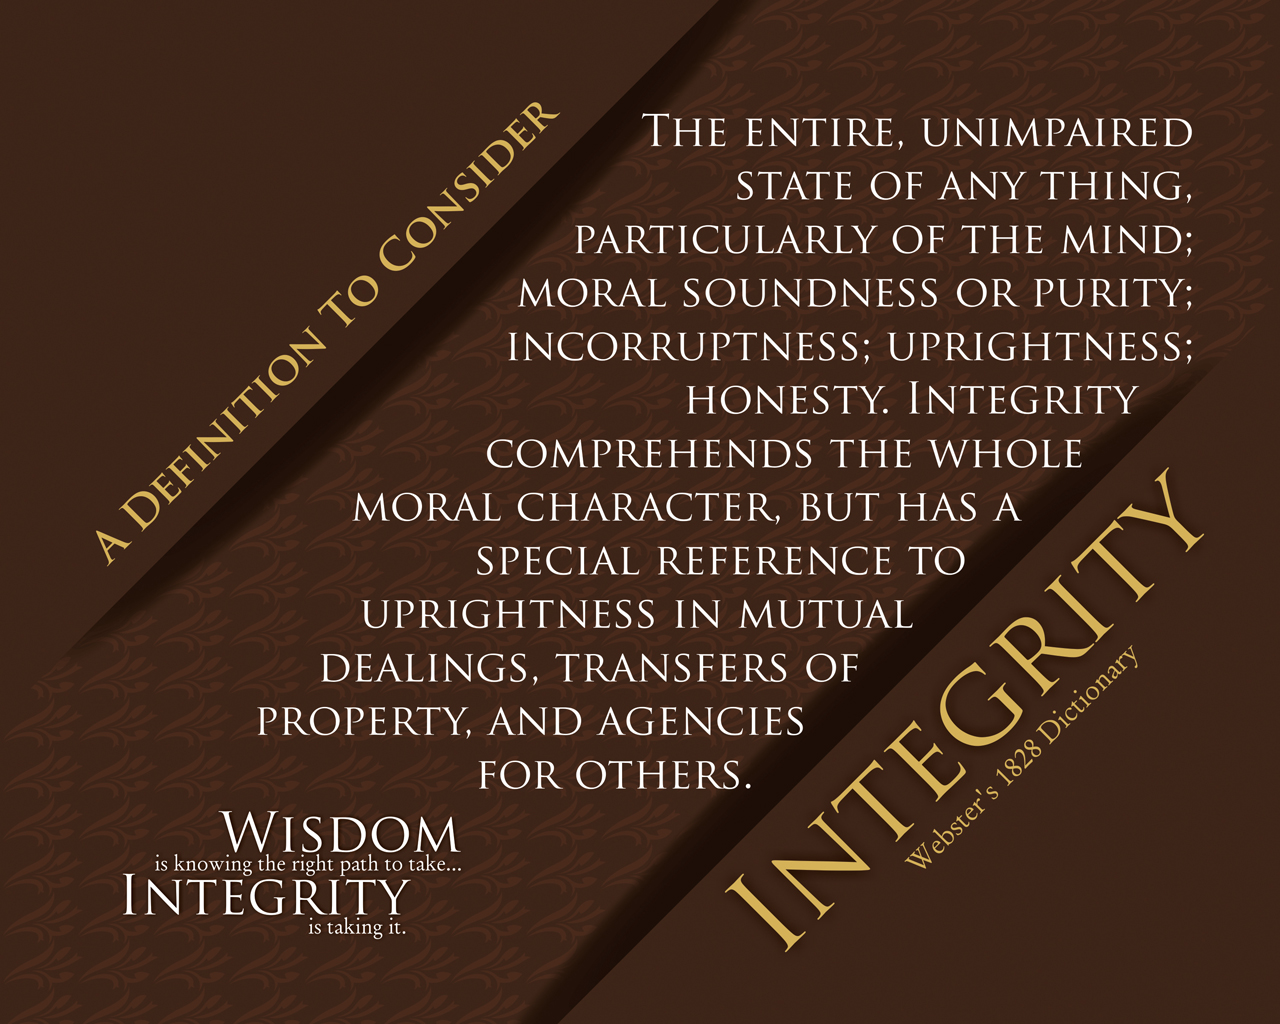 integrity definition essay Integrity essay writing help how can you judge a person on the basis of his/her view of integrity is the definition of integrity universal.